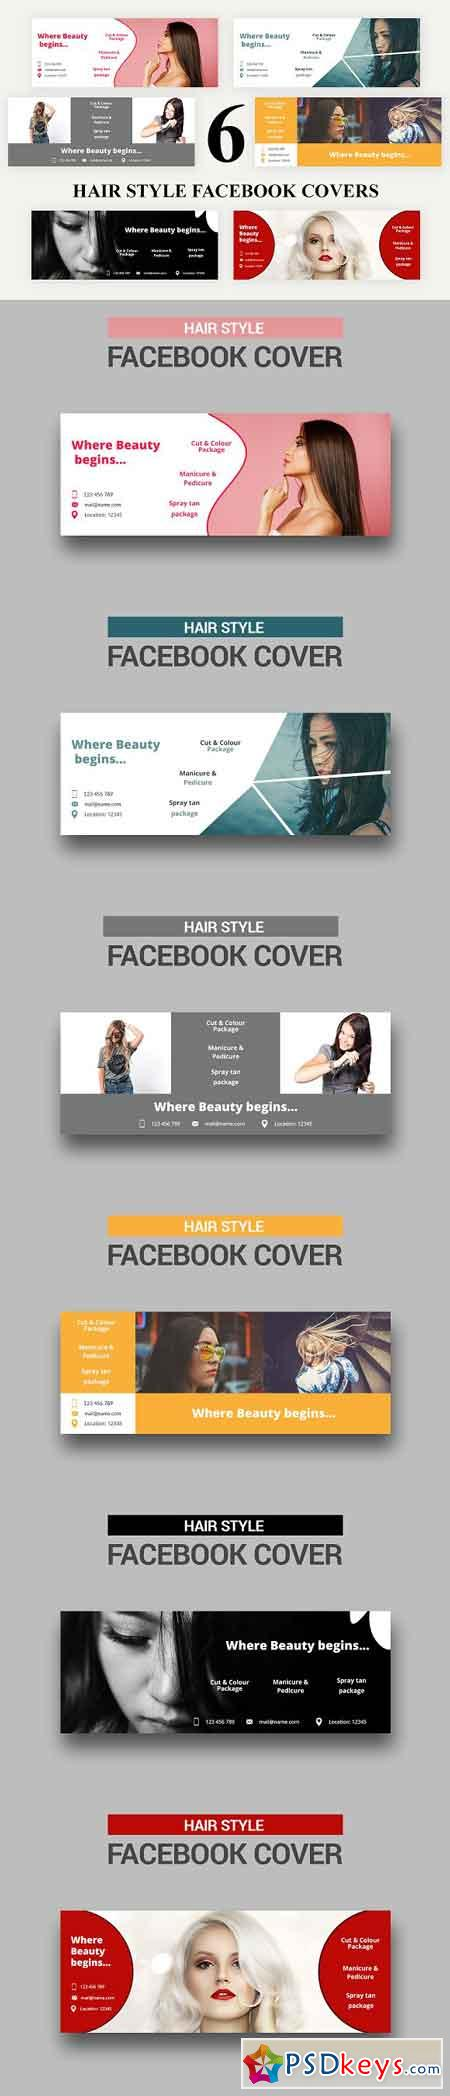 Hair Style Facebook Covers - SK 3035698